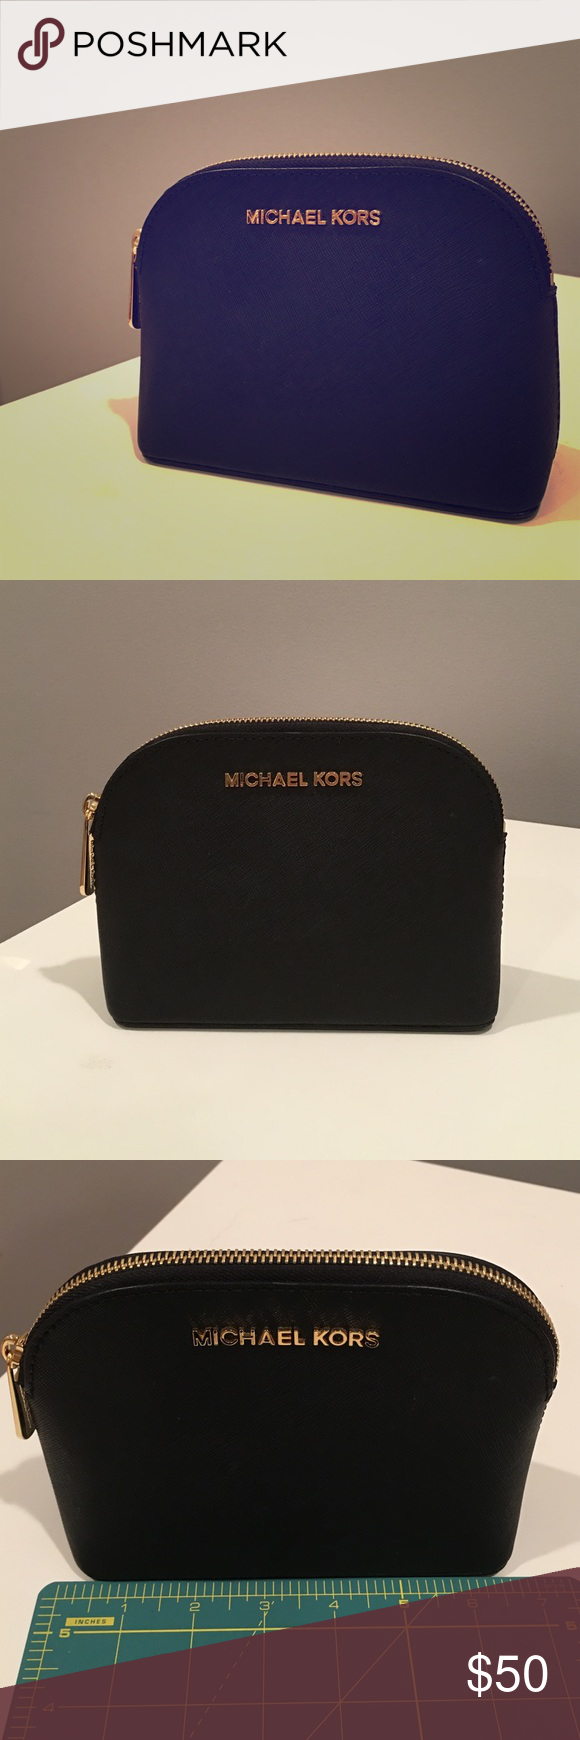 fc0a04f00a82 ... new style michael kors cindy saffiano leather travel pouch 61970 3e408  best nwt michael kors cindy cosmetic ...